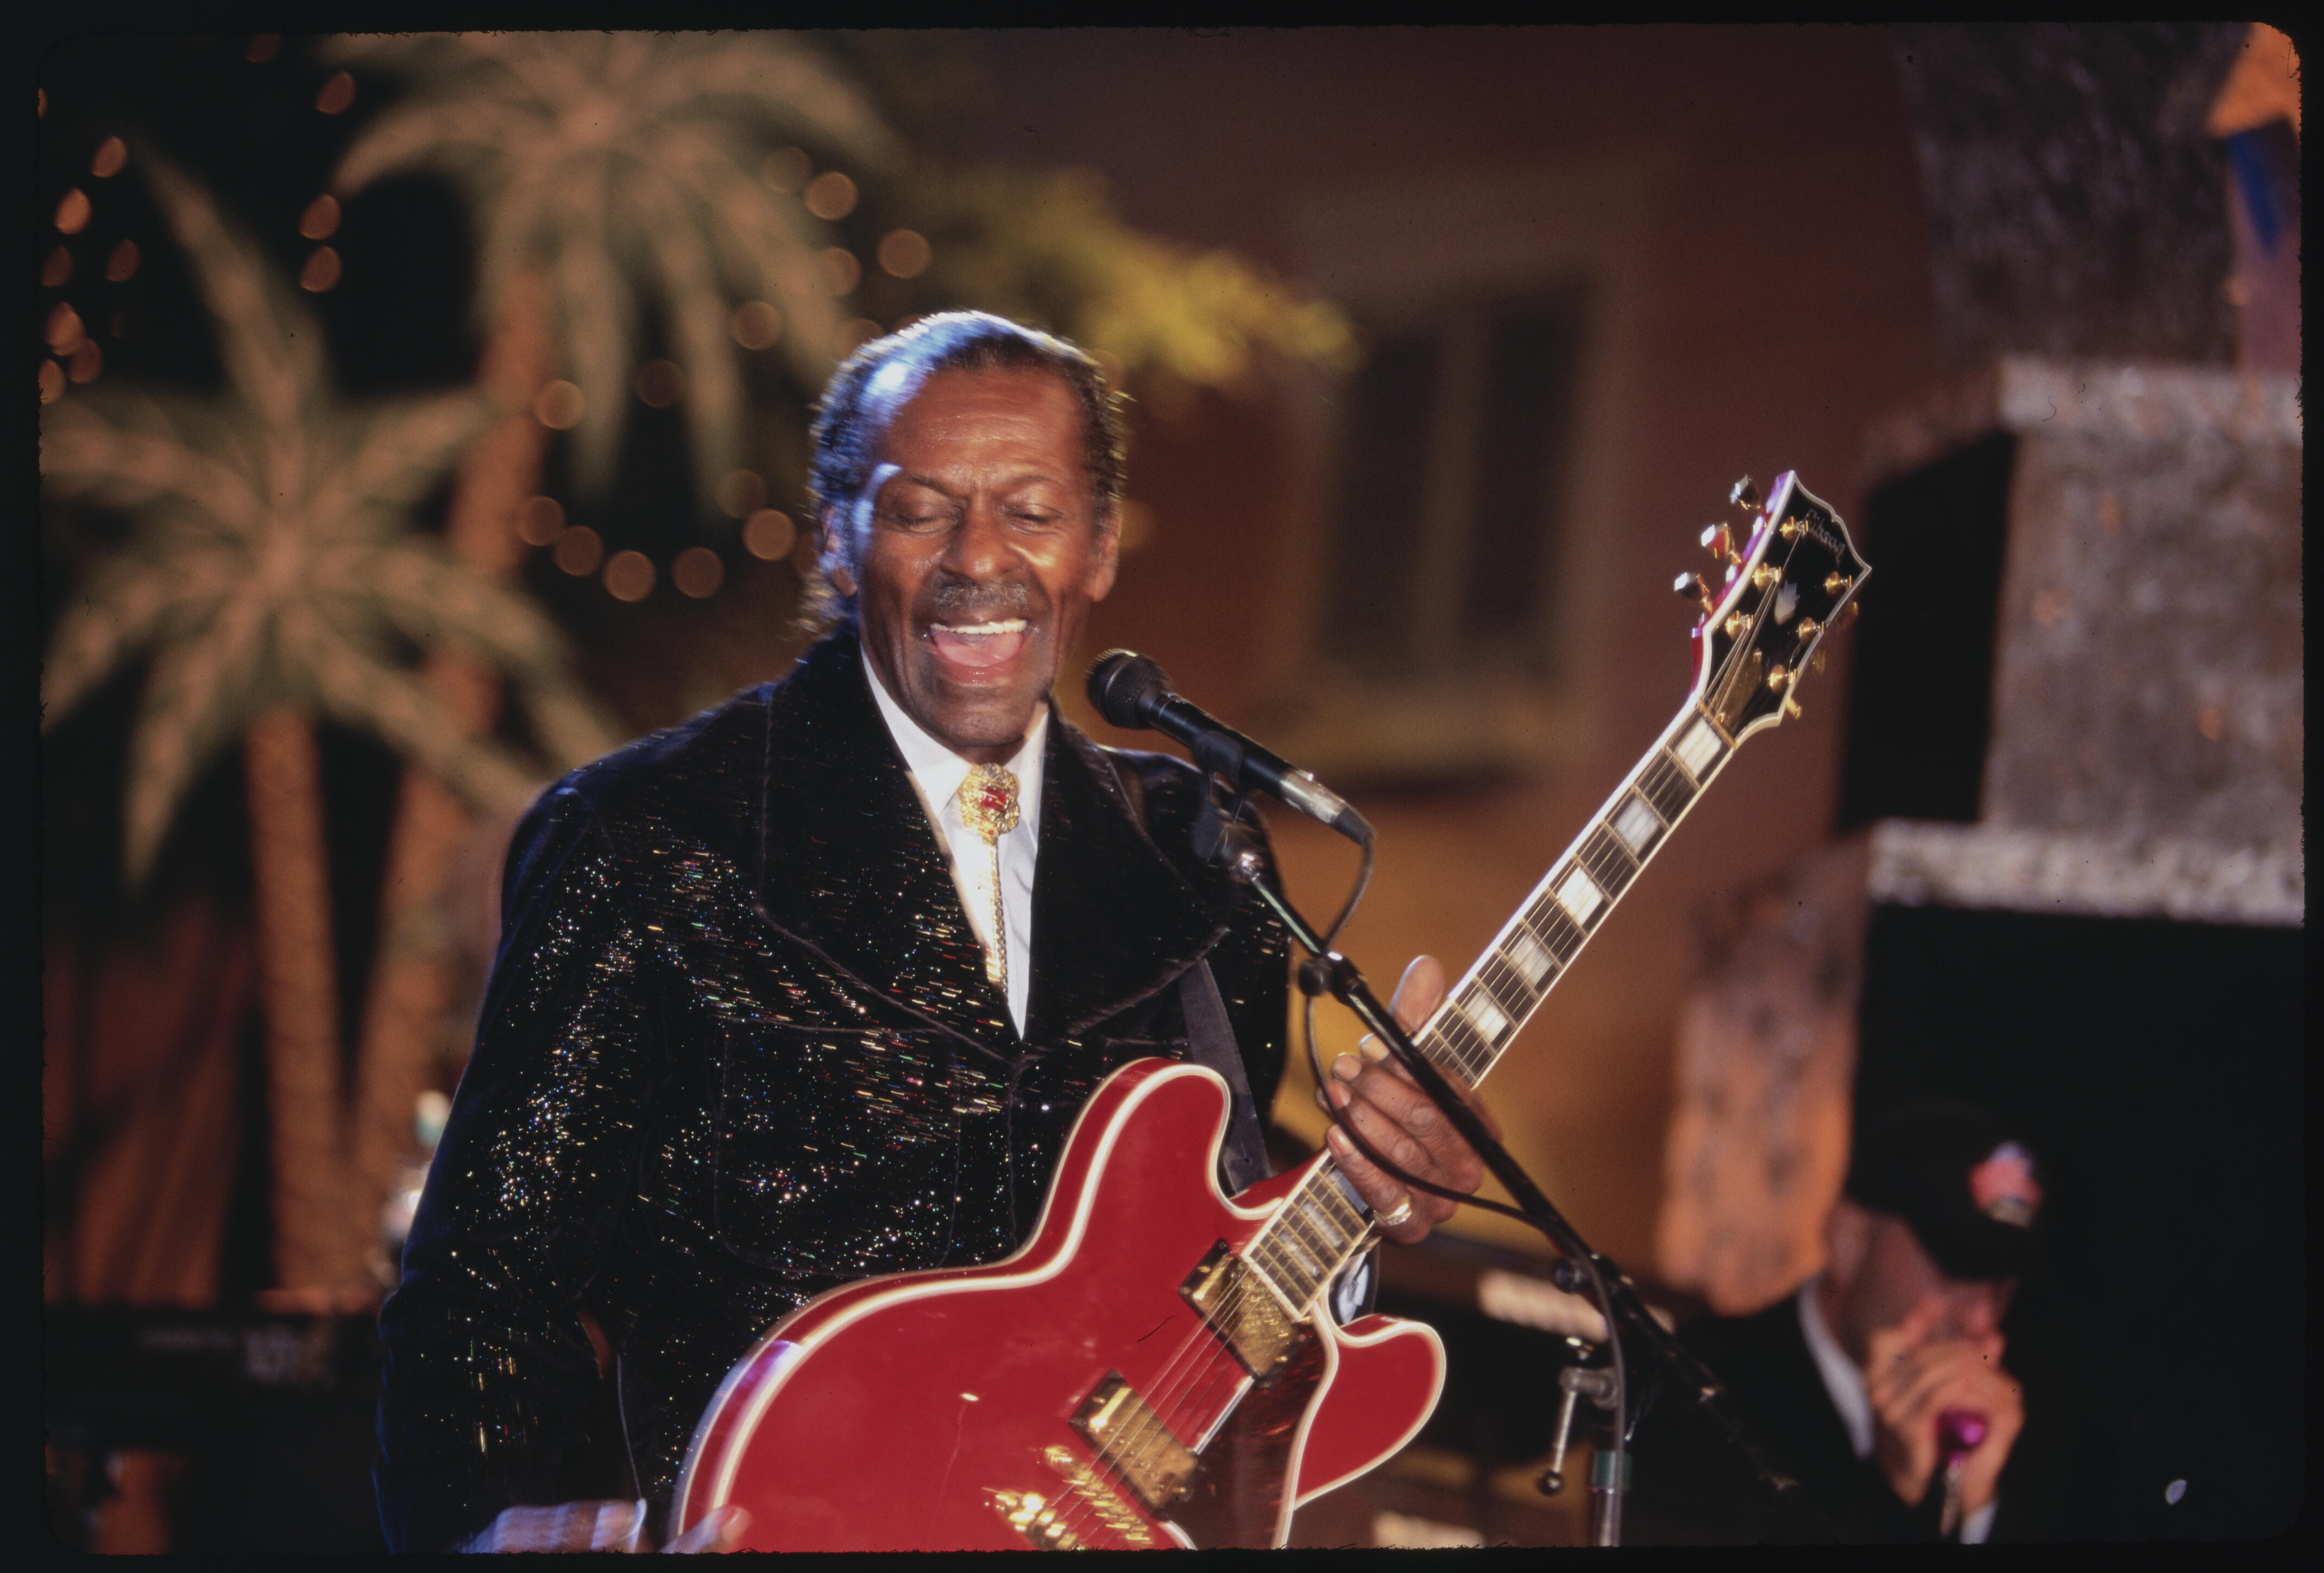 (Original Caption) Hollywood, California: Chuck Berry At Planet Hollywood Opening. (Photo by © Steve Starr/CORBIS/Corbis via Getty Images)